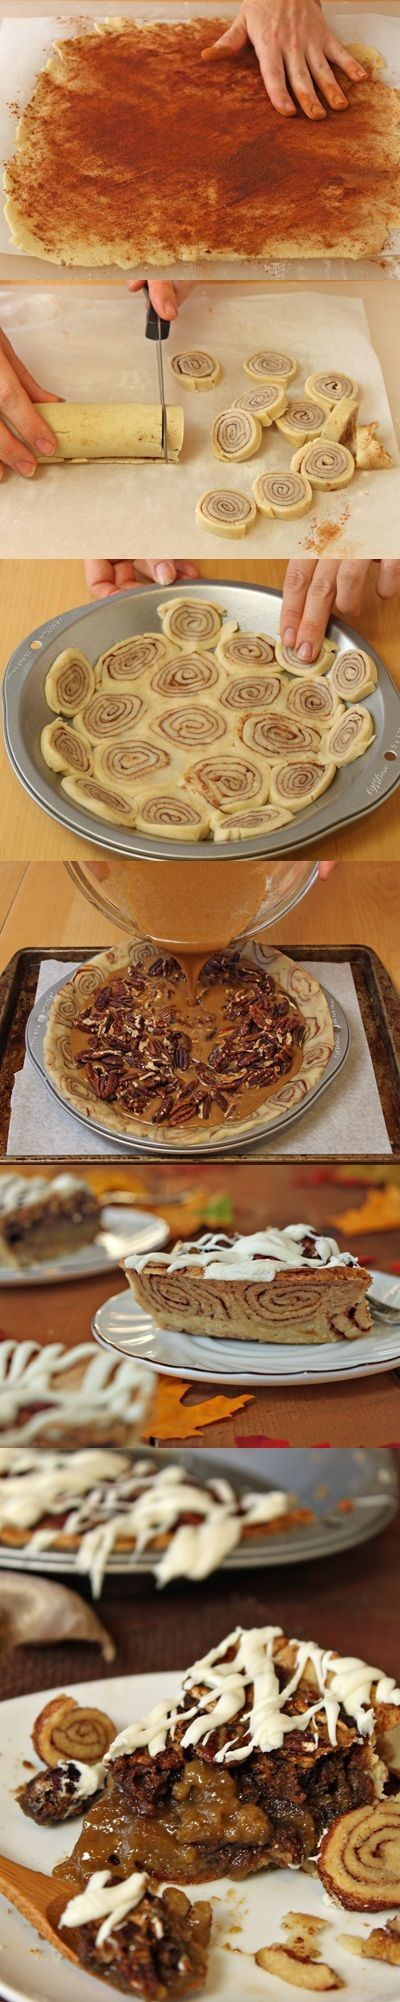 Cinnamon Bun Pecan Pie - the crust is cinnamon rolls? Mind=blown. Must make this.